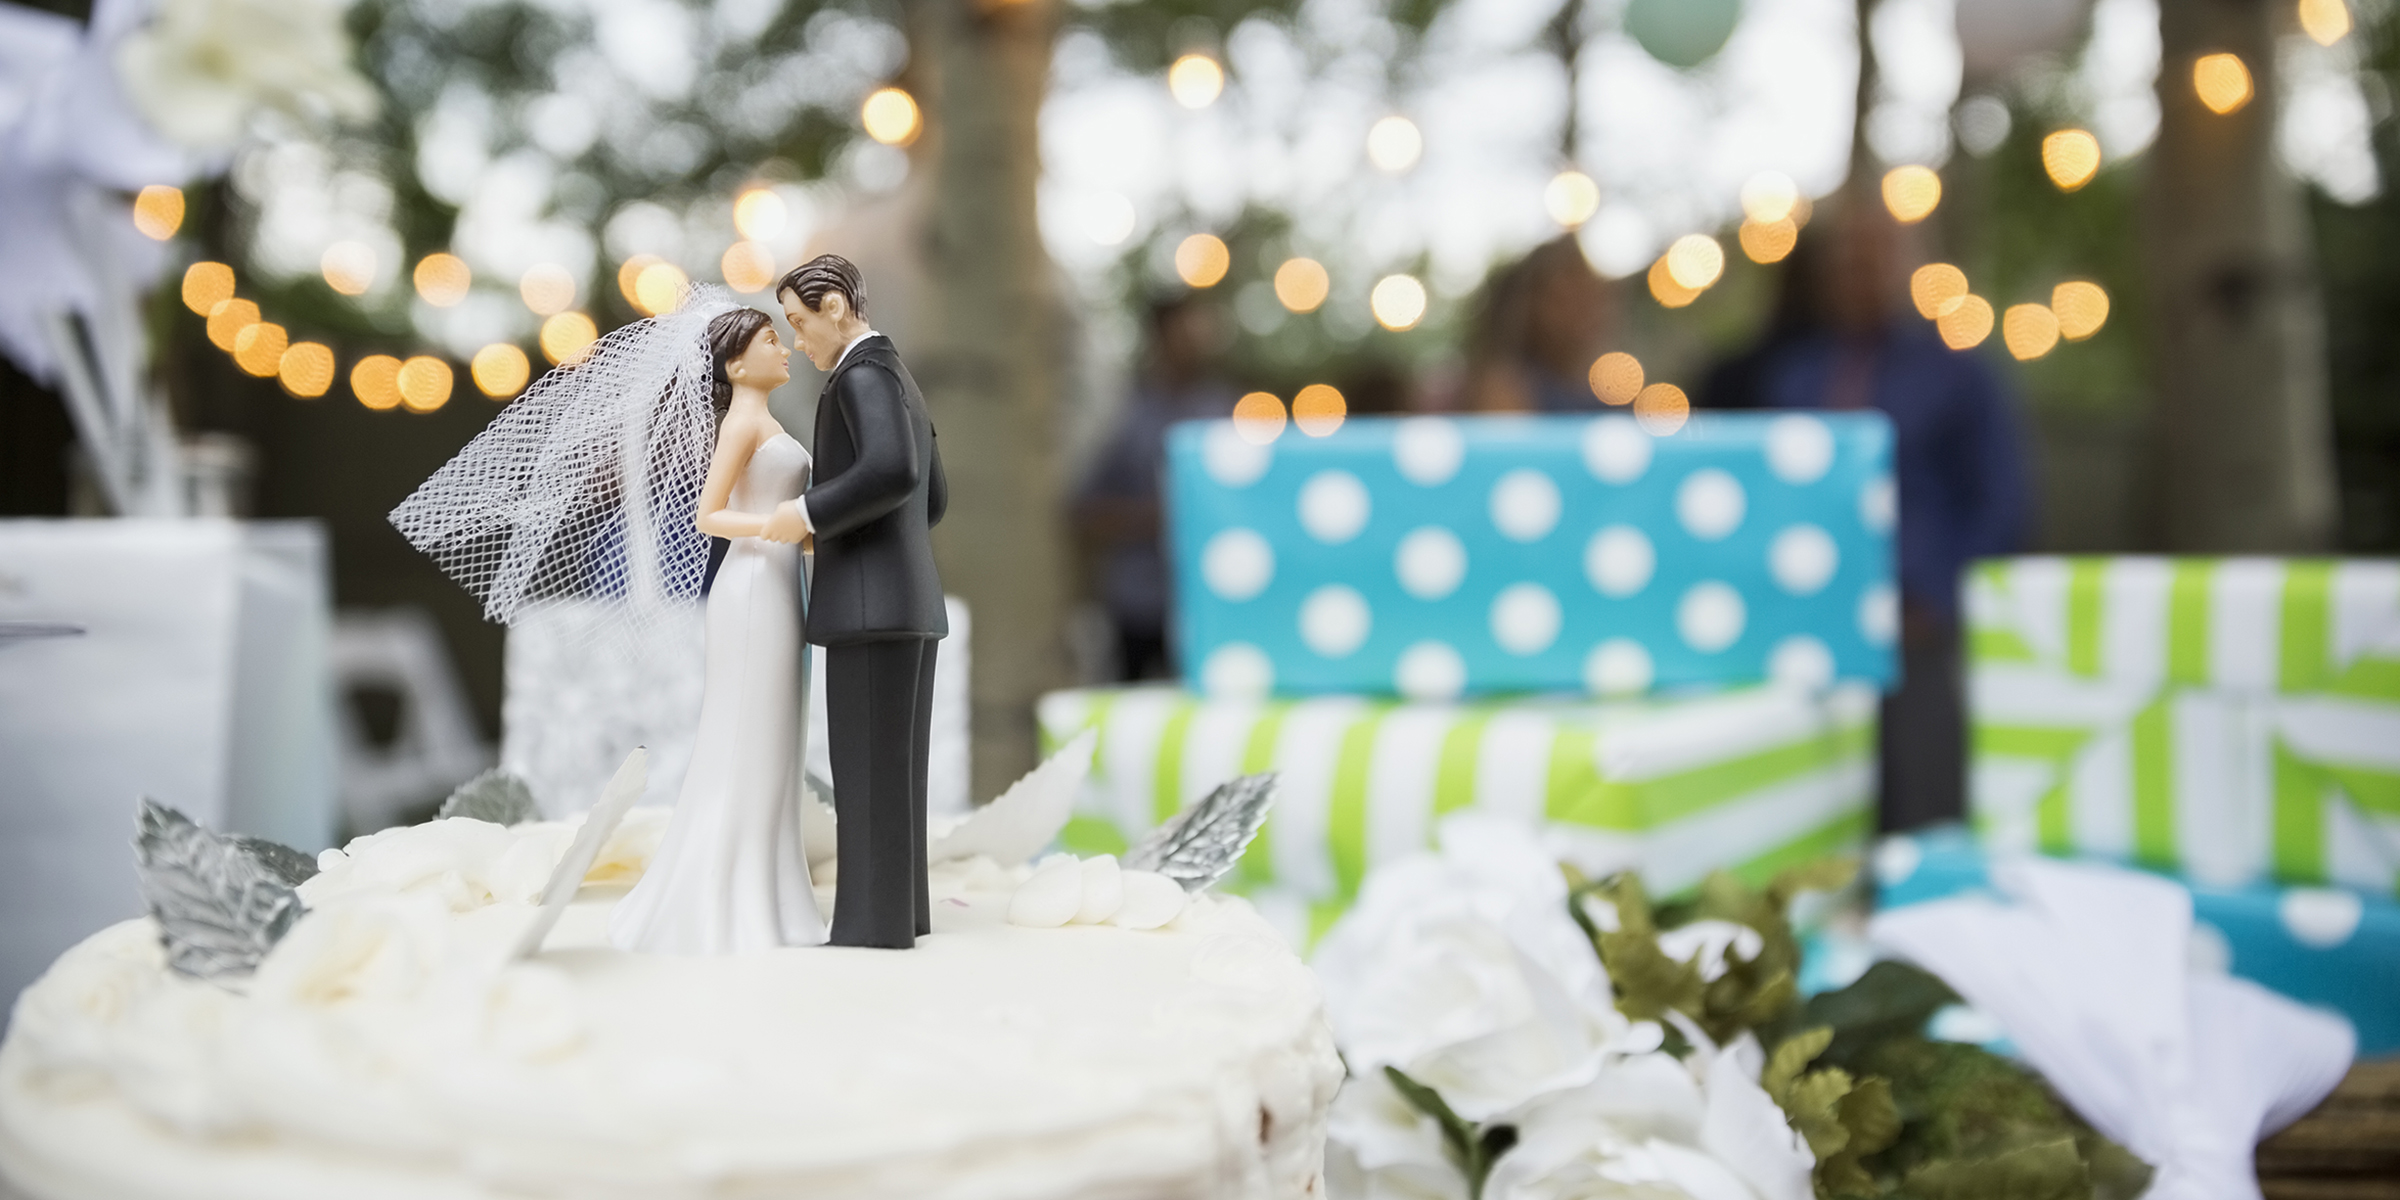 Top 6 Wedding Gifts For Men